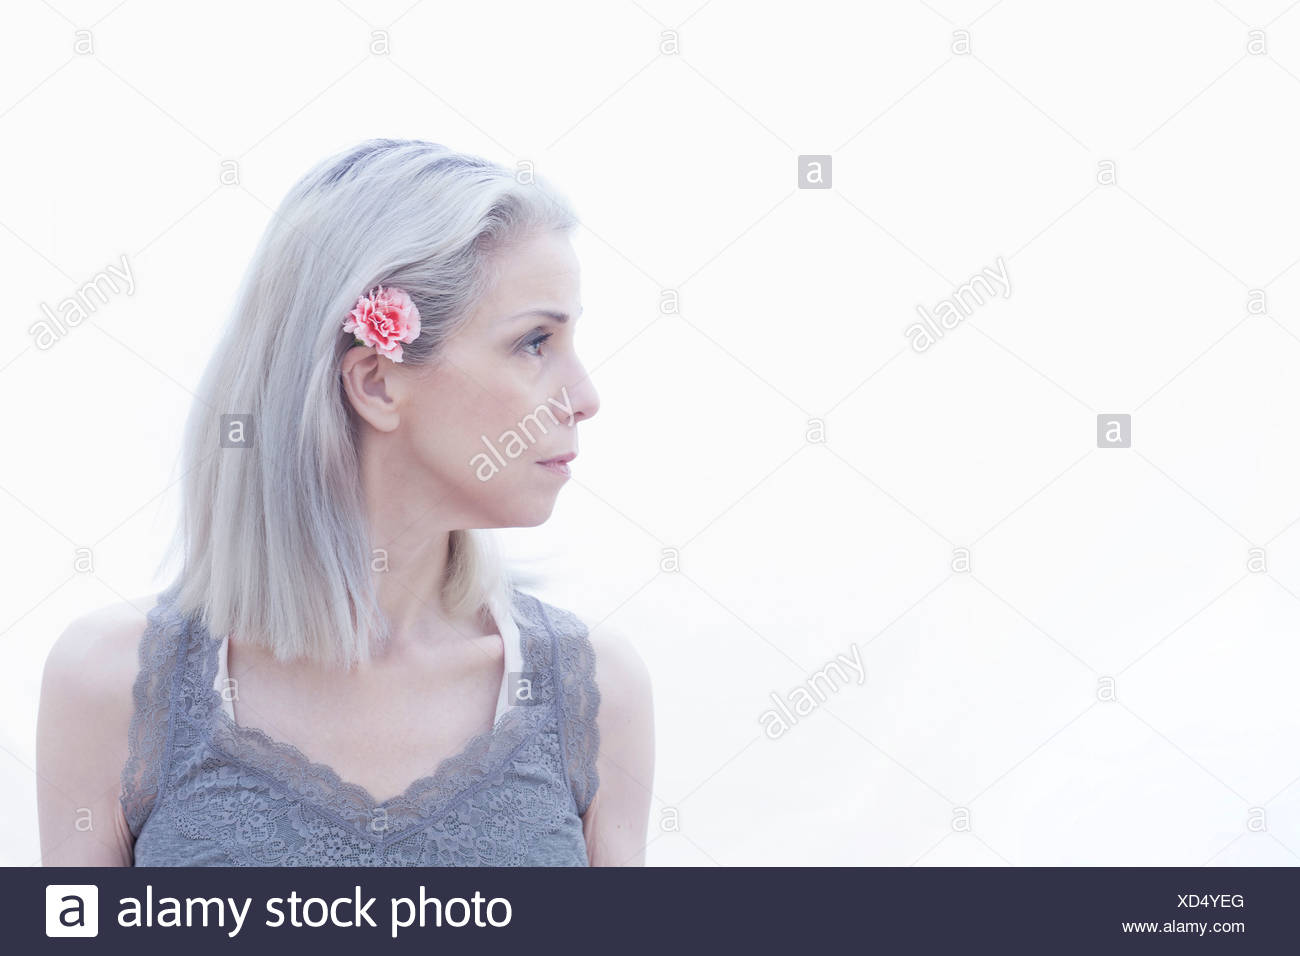 Portrait of young woman with flower in hair Photo Stock